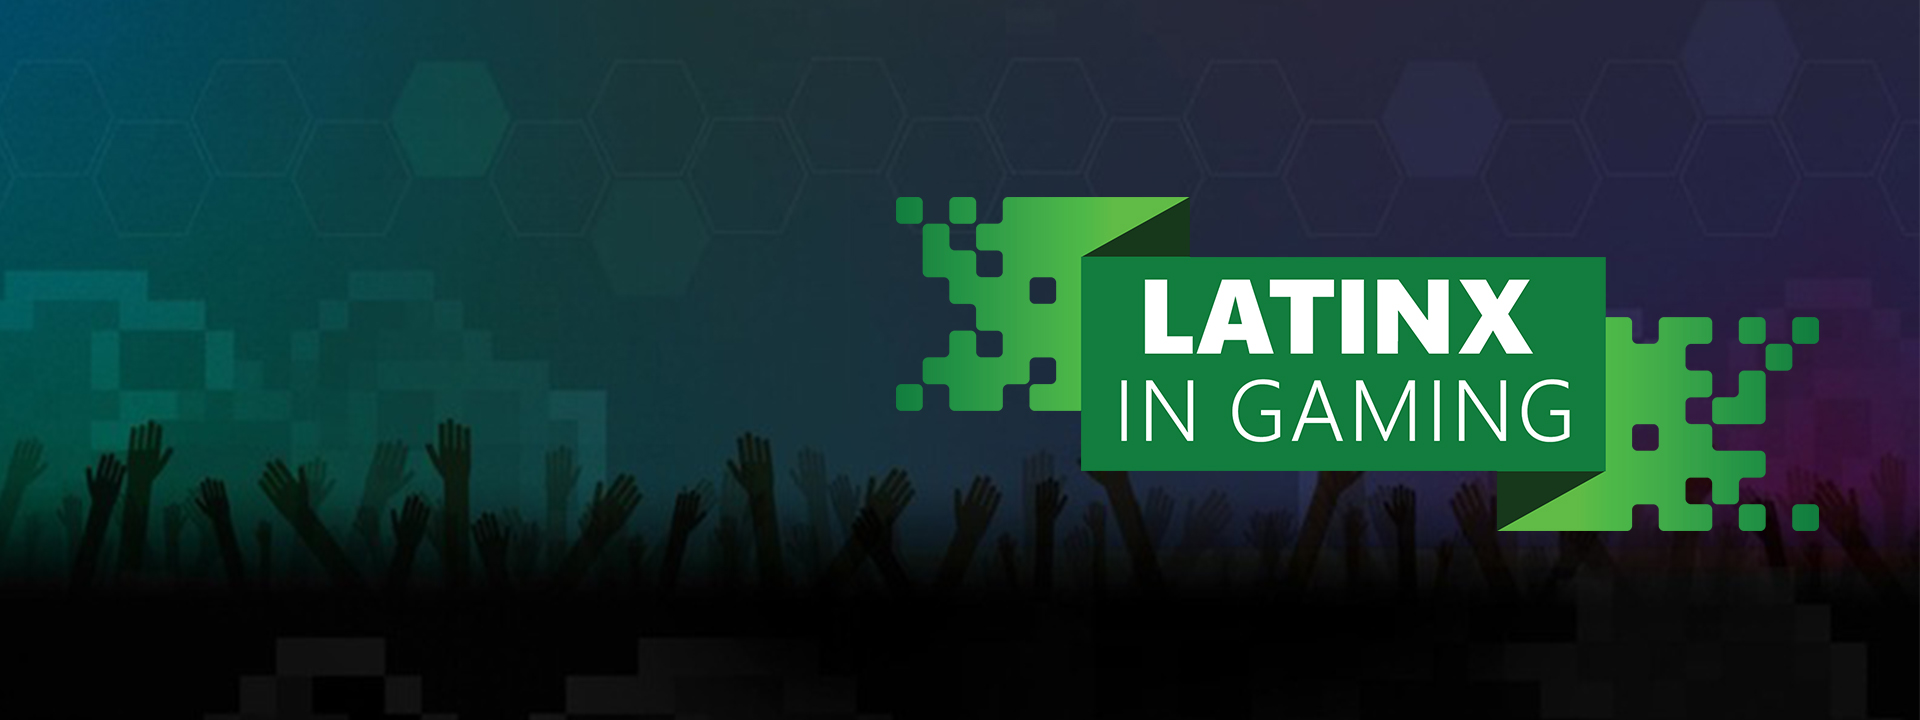 Celebrando Latinx en Gaming Event Logo